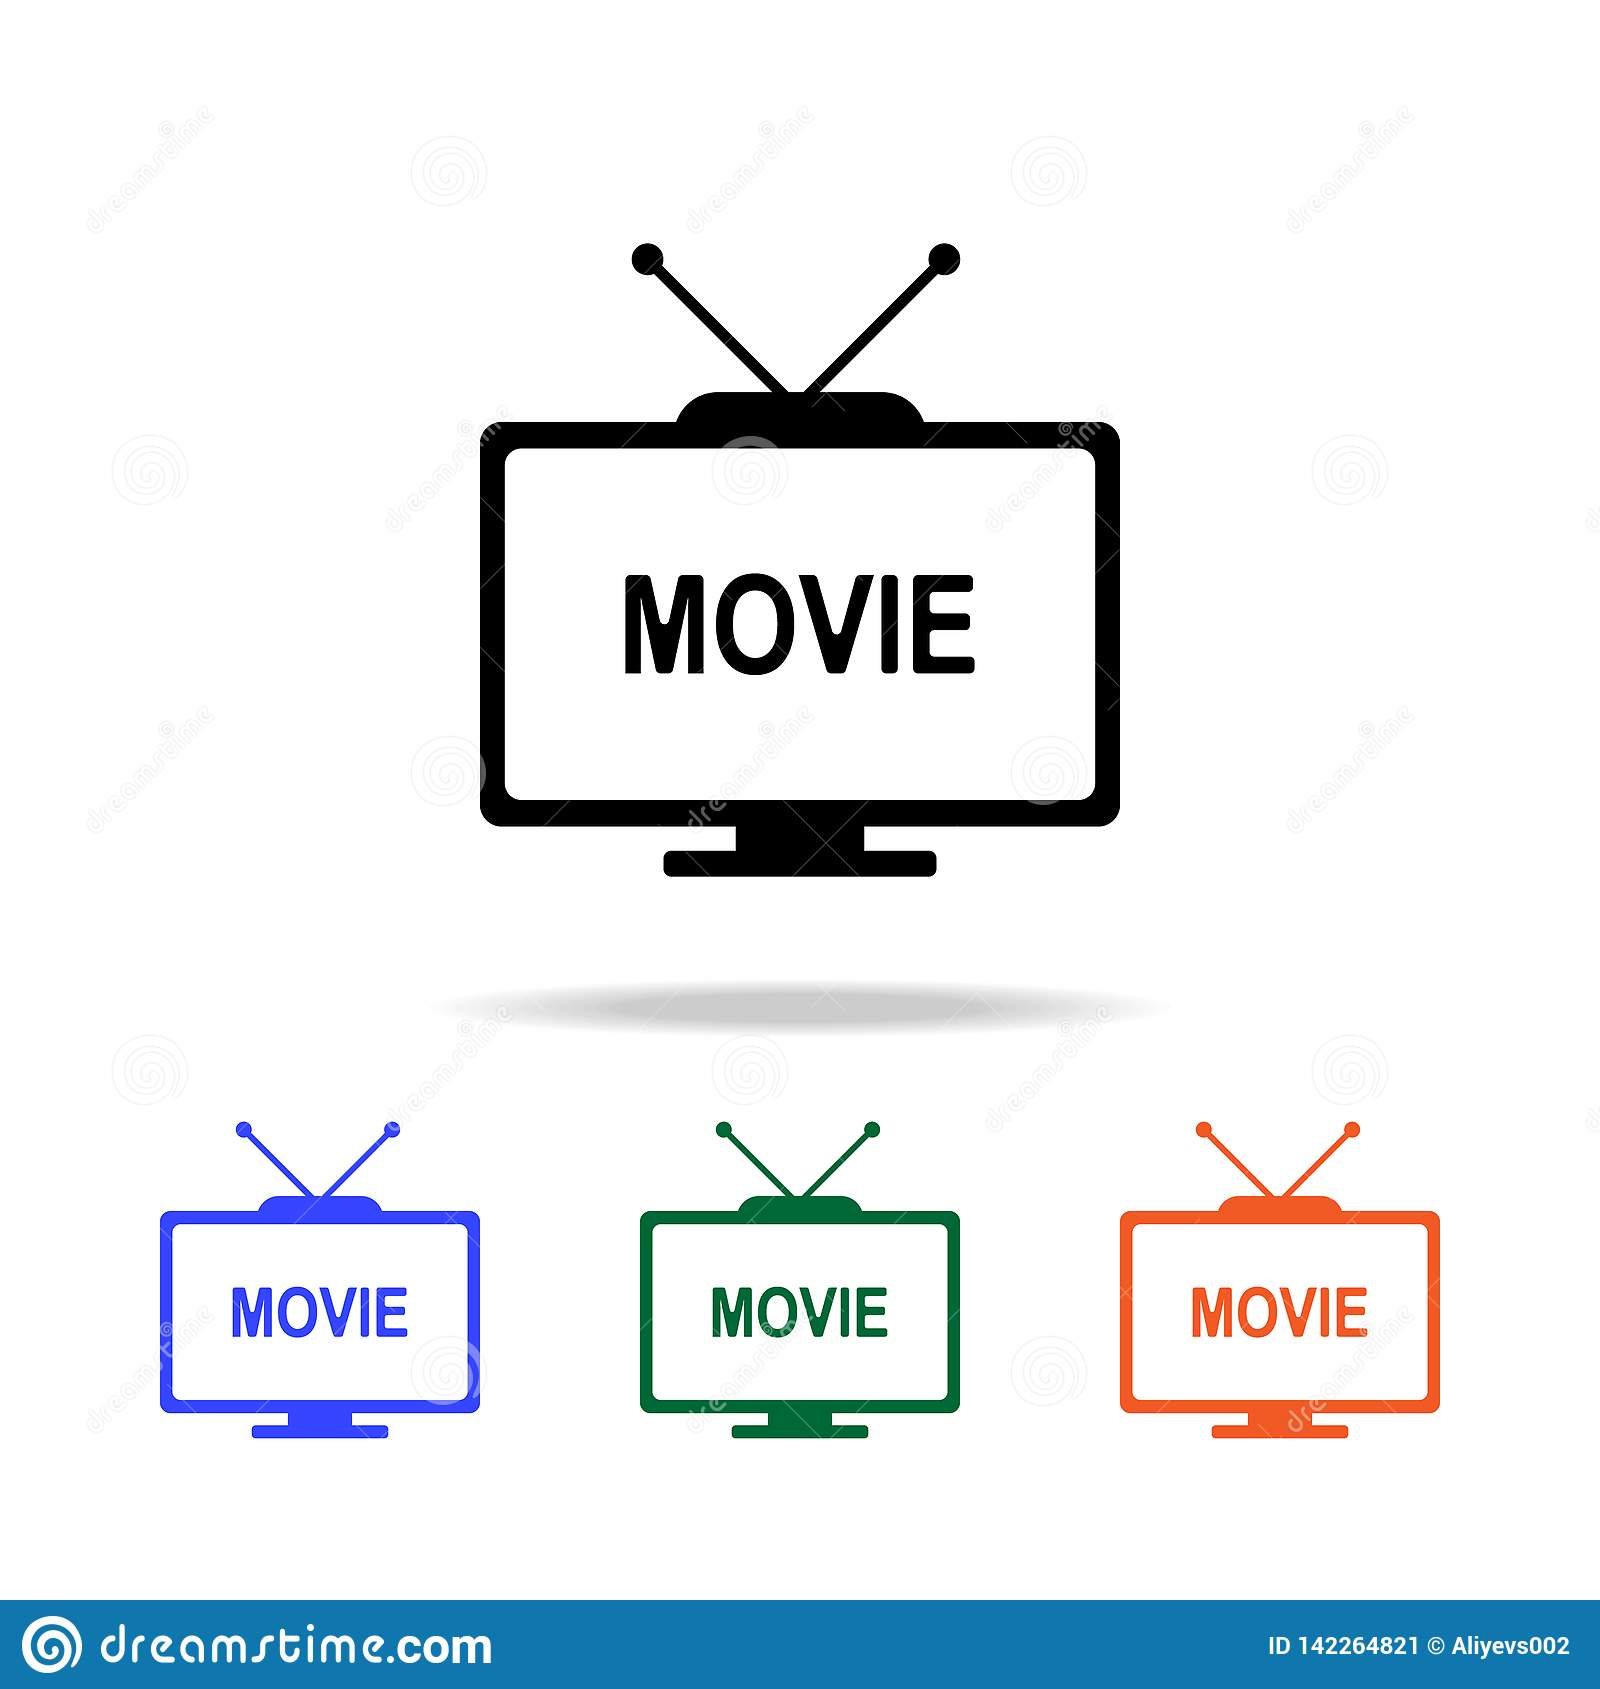 film on TV icon. Elements of simple web icon in multi color. Premium quality graphic design icon. Simple icon for websites, web